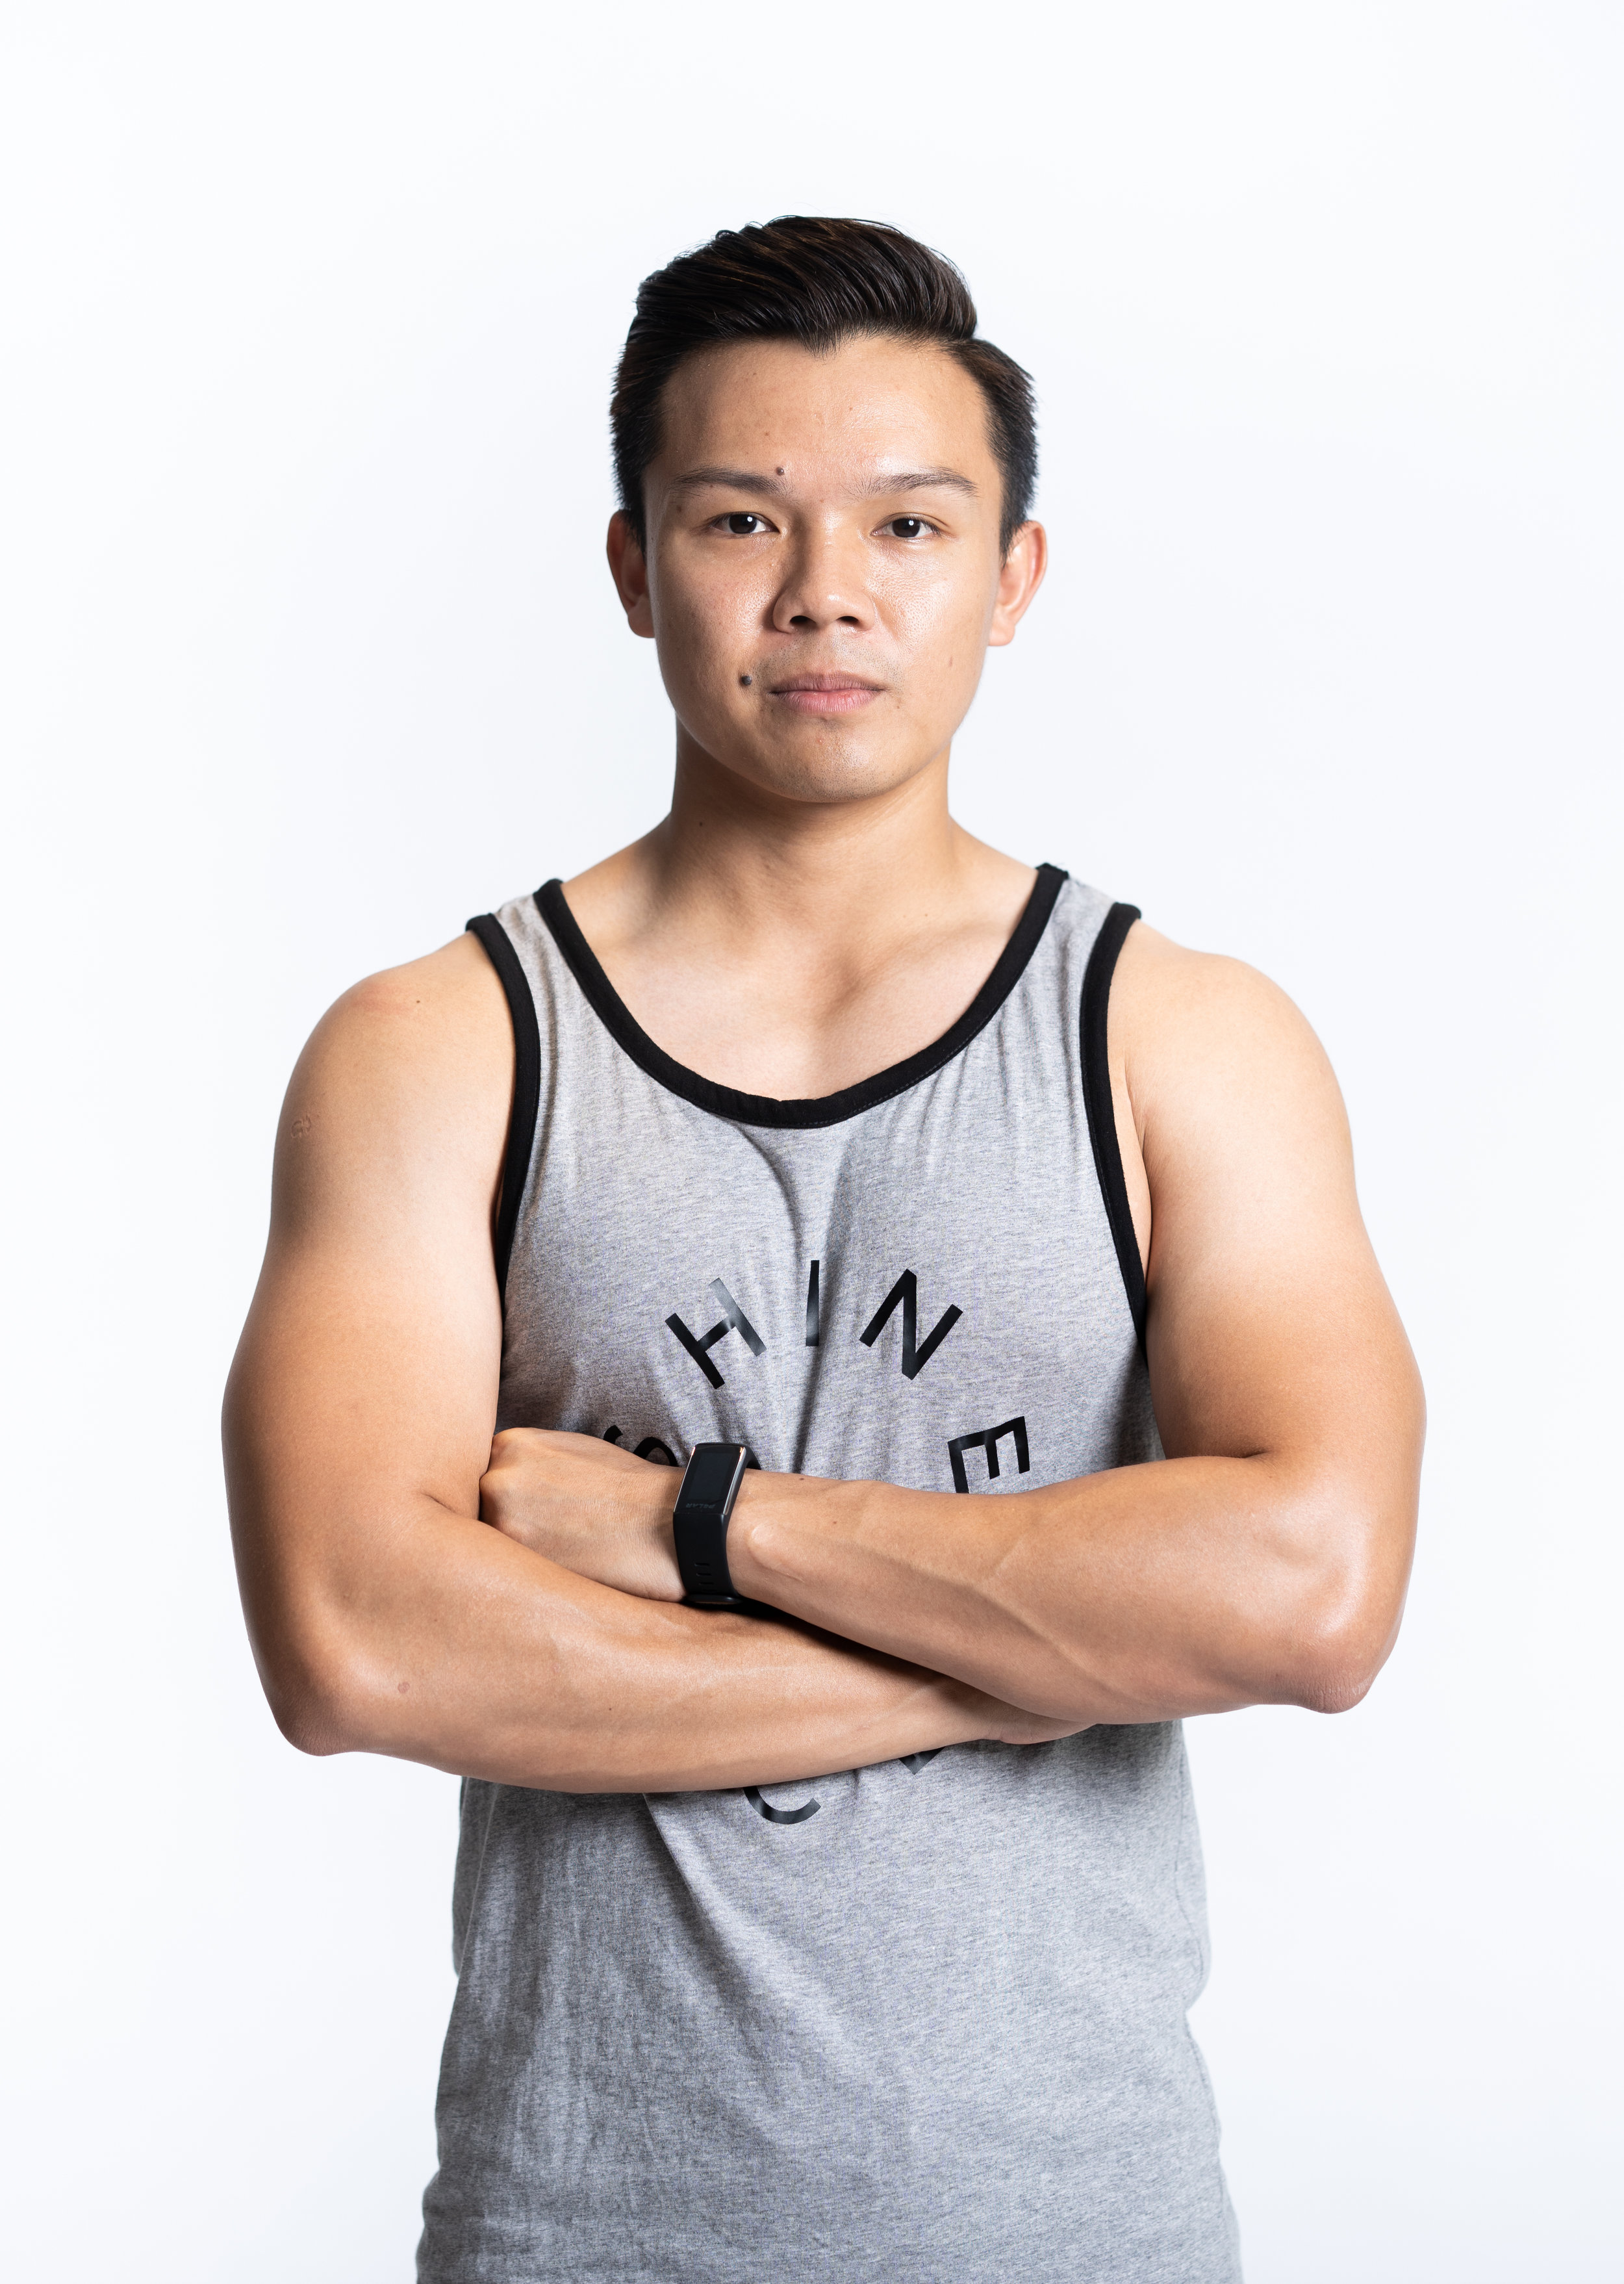 kAI - A lifelong obsession with athletics, Kai combines high energy and positive vibes to deliver an insanely effective workout. His focus on proper technique and mastering movement will help you achieve faster results and destroy your limits. Kai's classes are fluid, ferocious, and filled with fun!Challenge your limits.